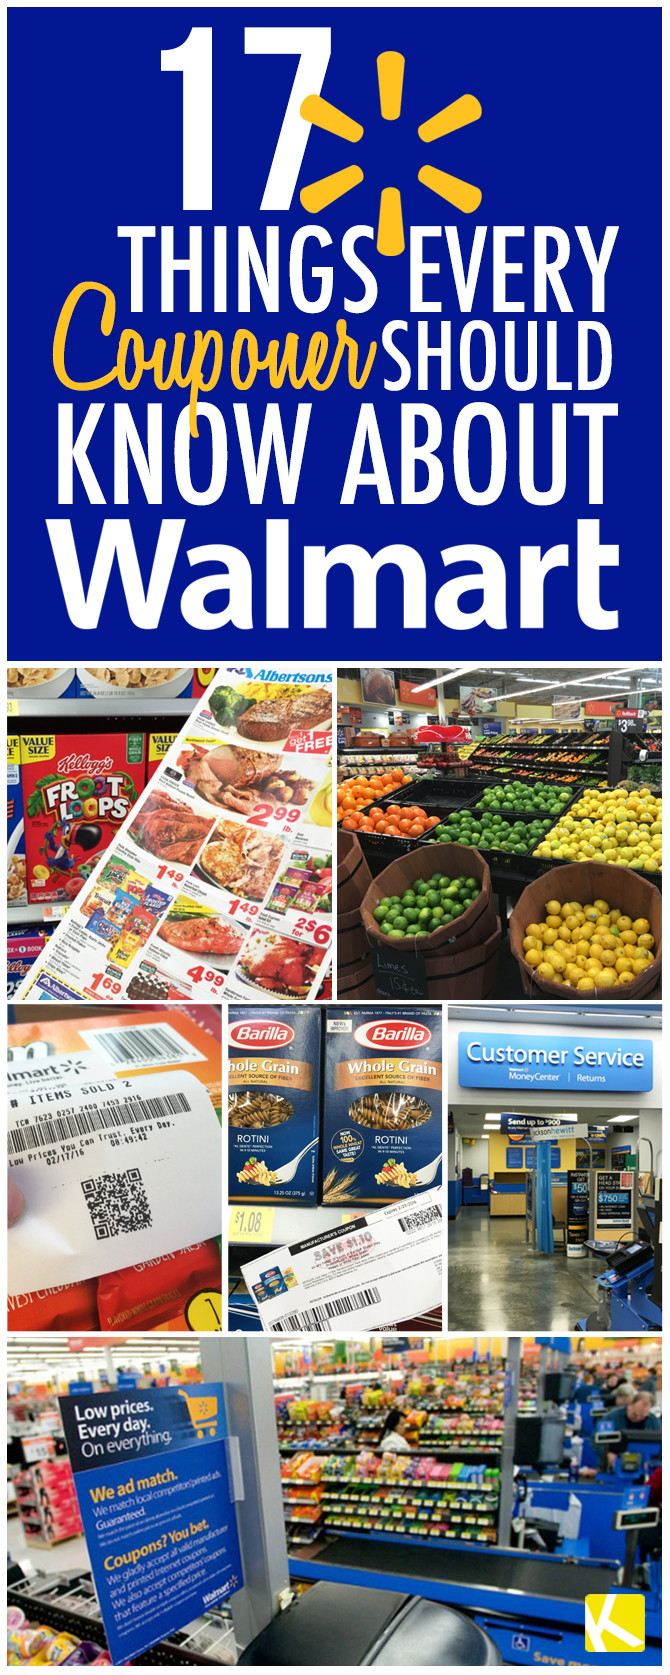 Walmart CouponsFree Ship · Free Store Pick Up · Best Coupons & Deals · Accessories & More.